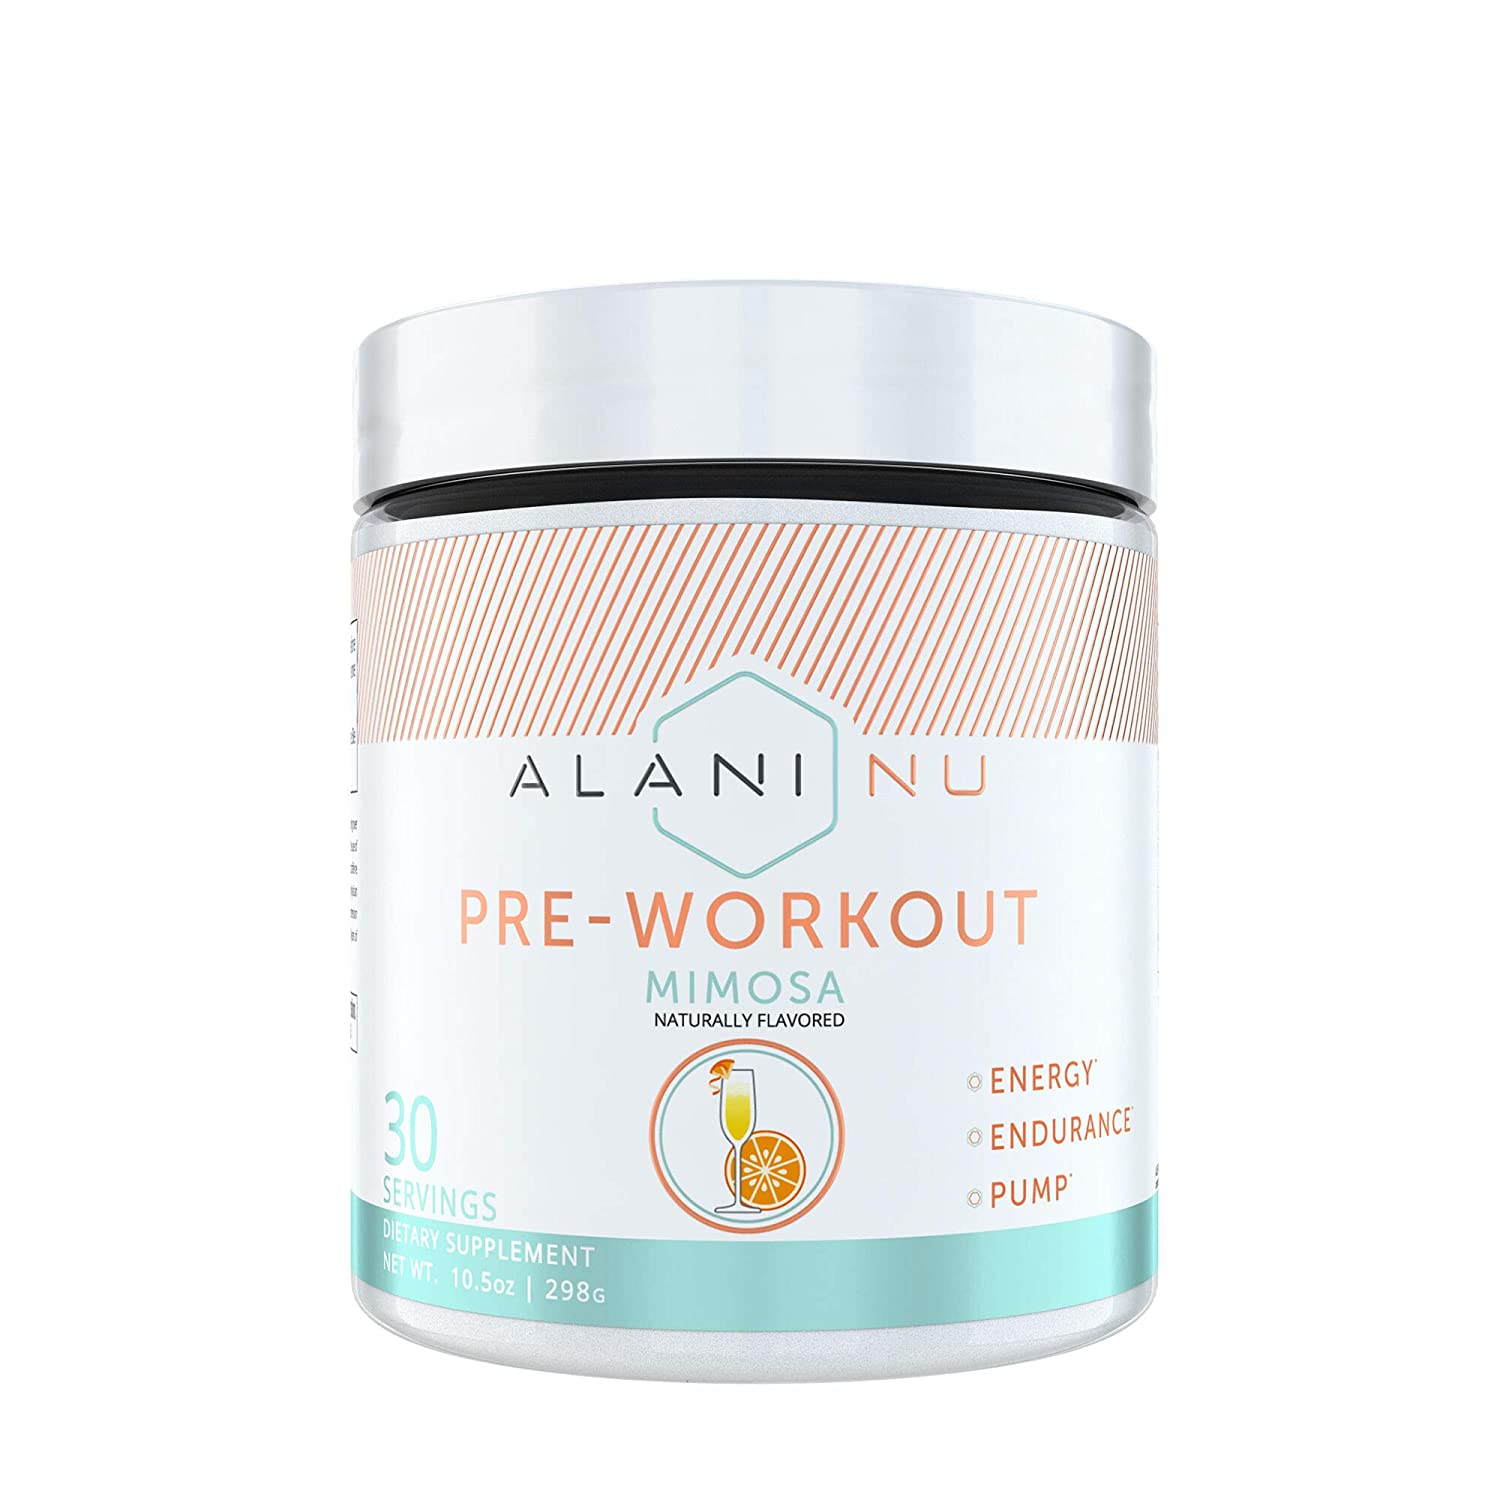 Alani Nu Pre Workout Powder w Caffeine, L-Theanine Beta Alanine, Mimosa, 30 Servings